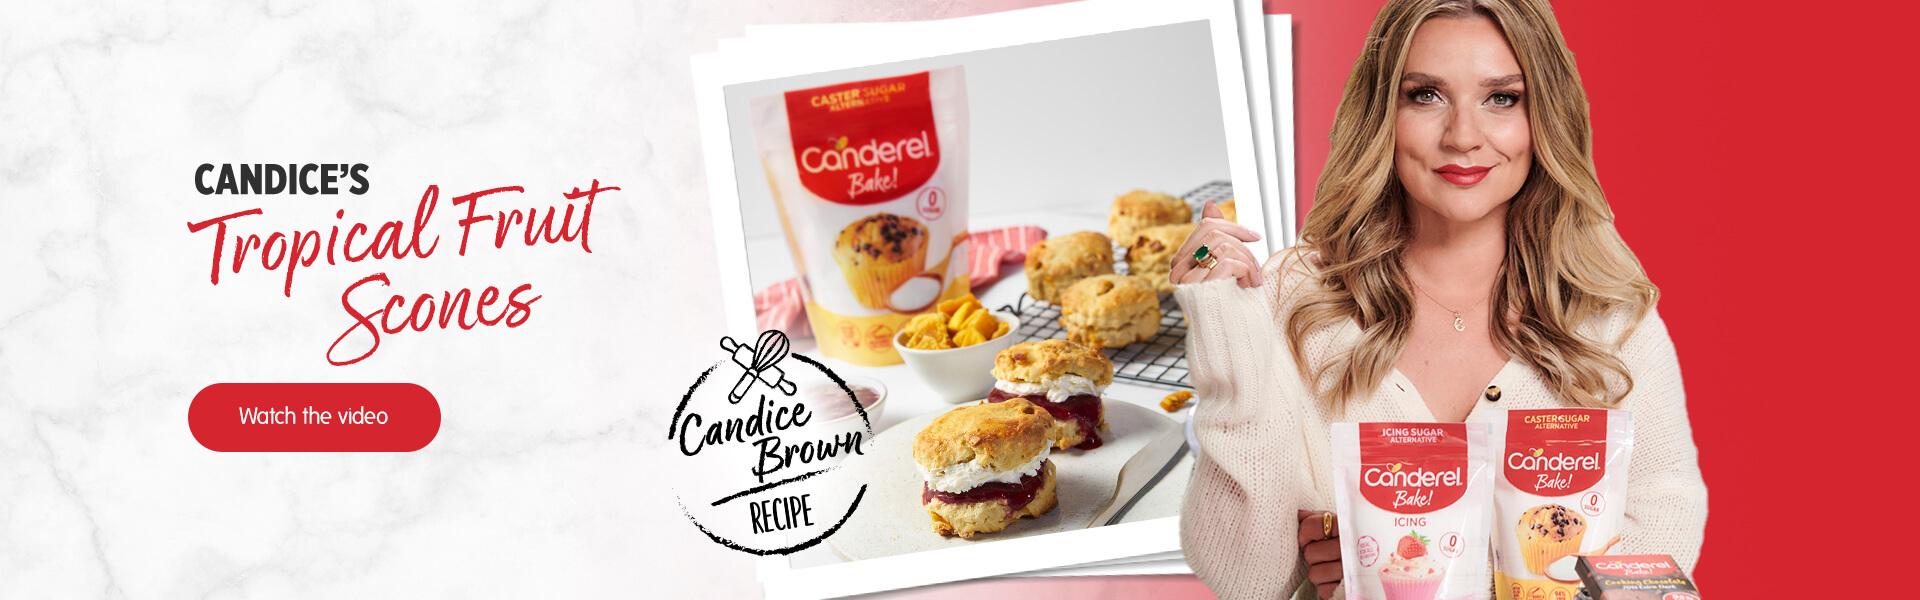 Candice Brown's Tropical Scones